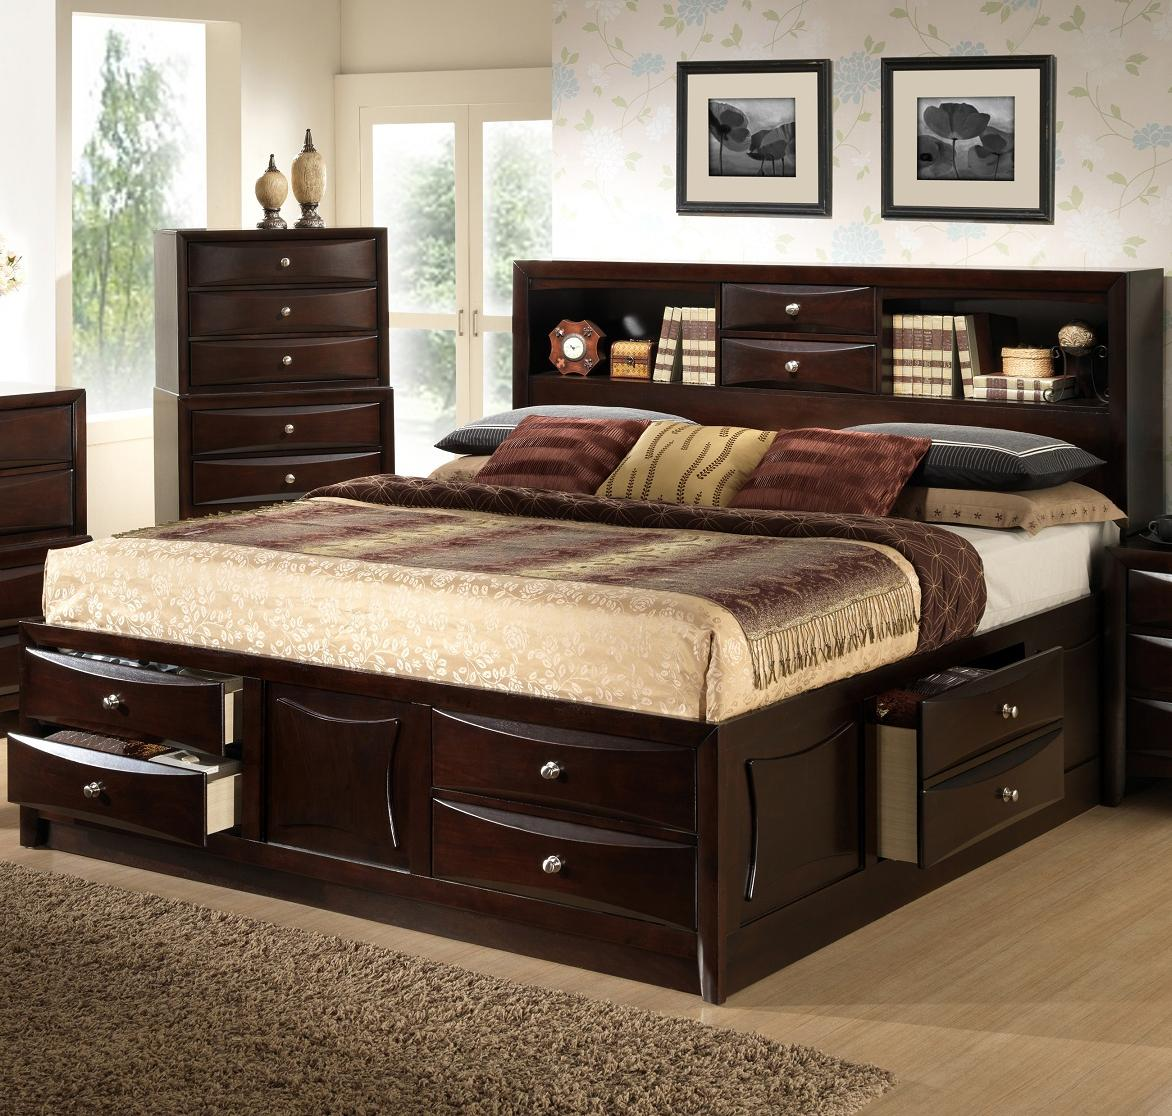 Lifestyle Todd Queen Storage Bed W Bookcase Headboard Royal Furniture Bookcase Beds